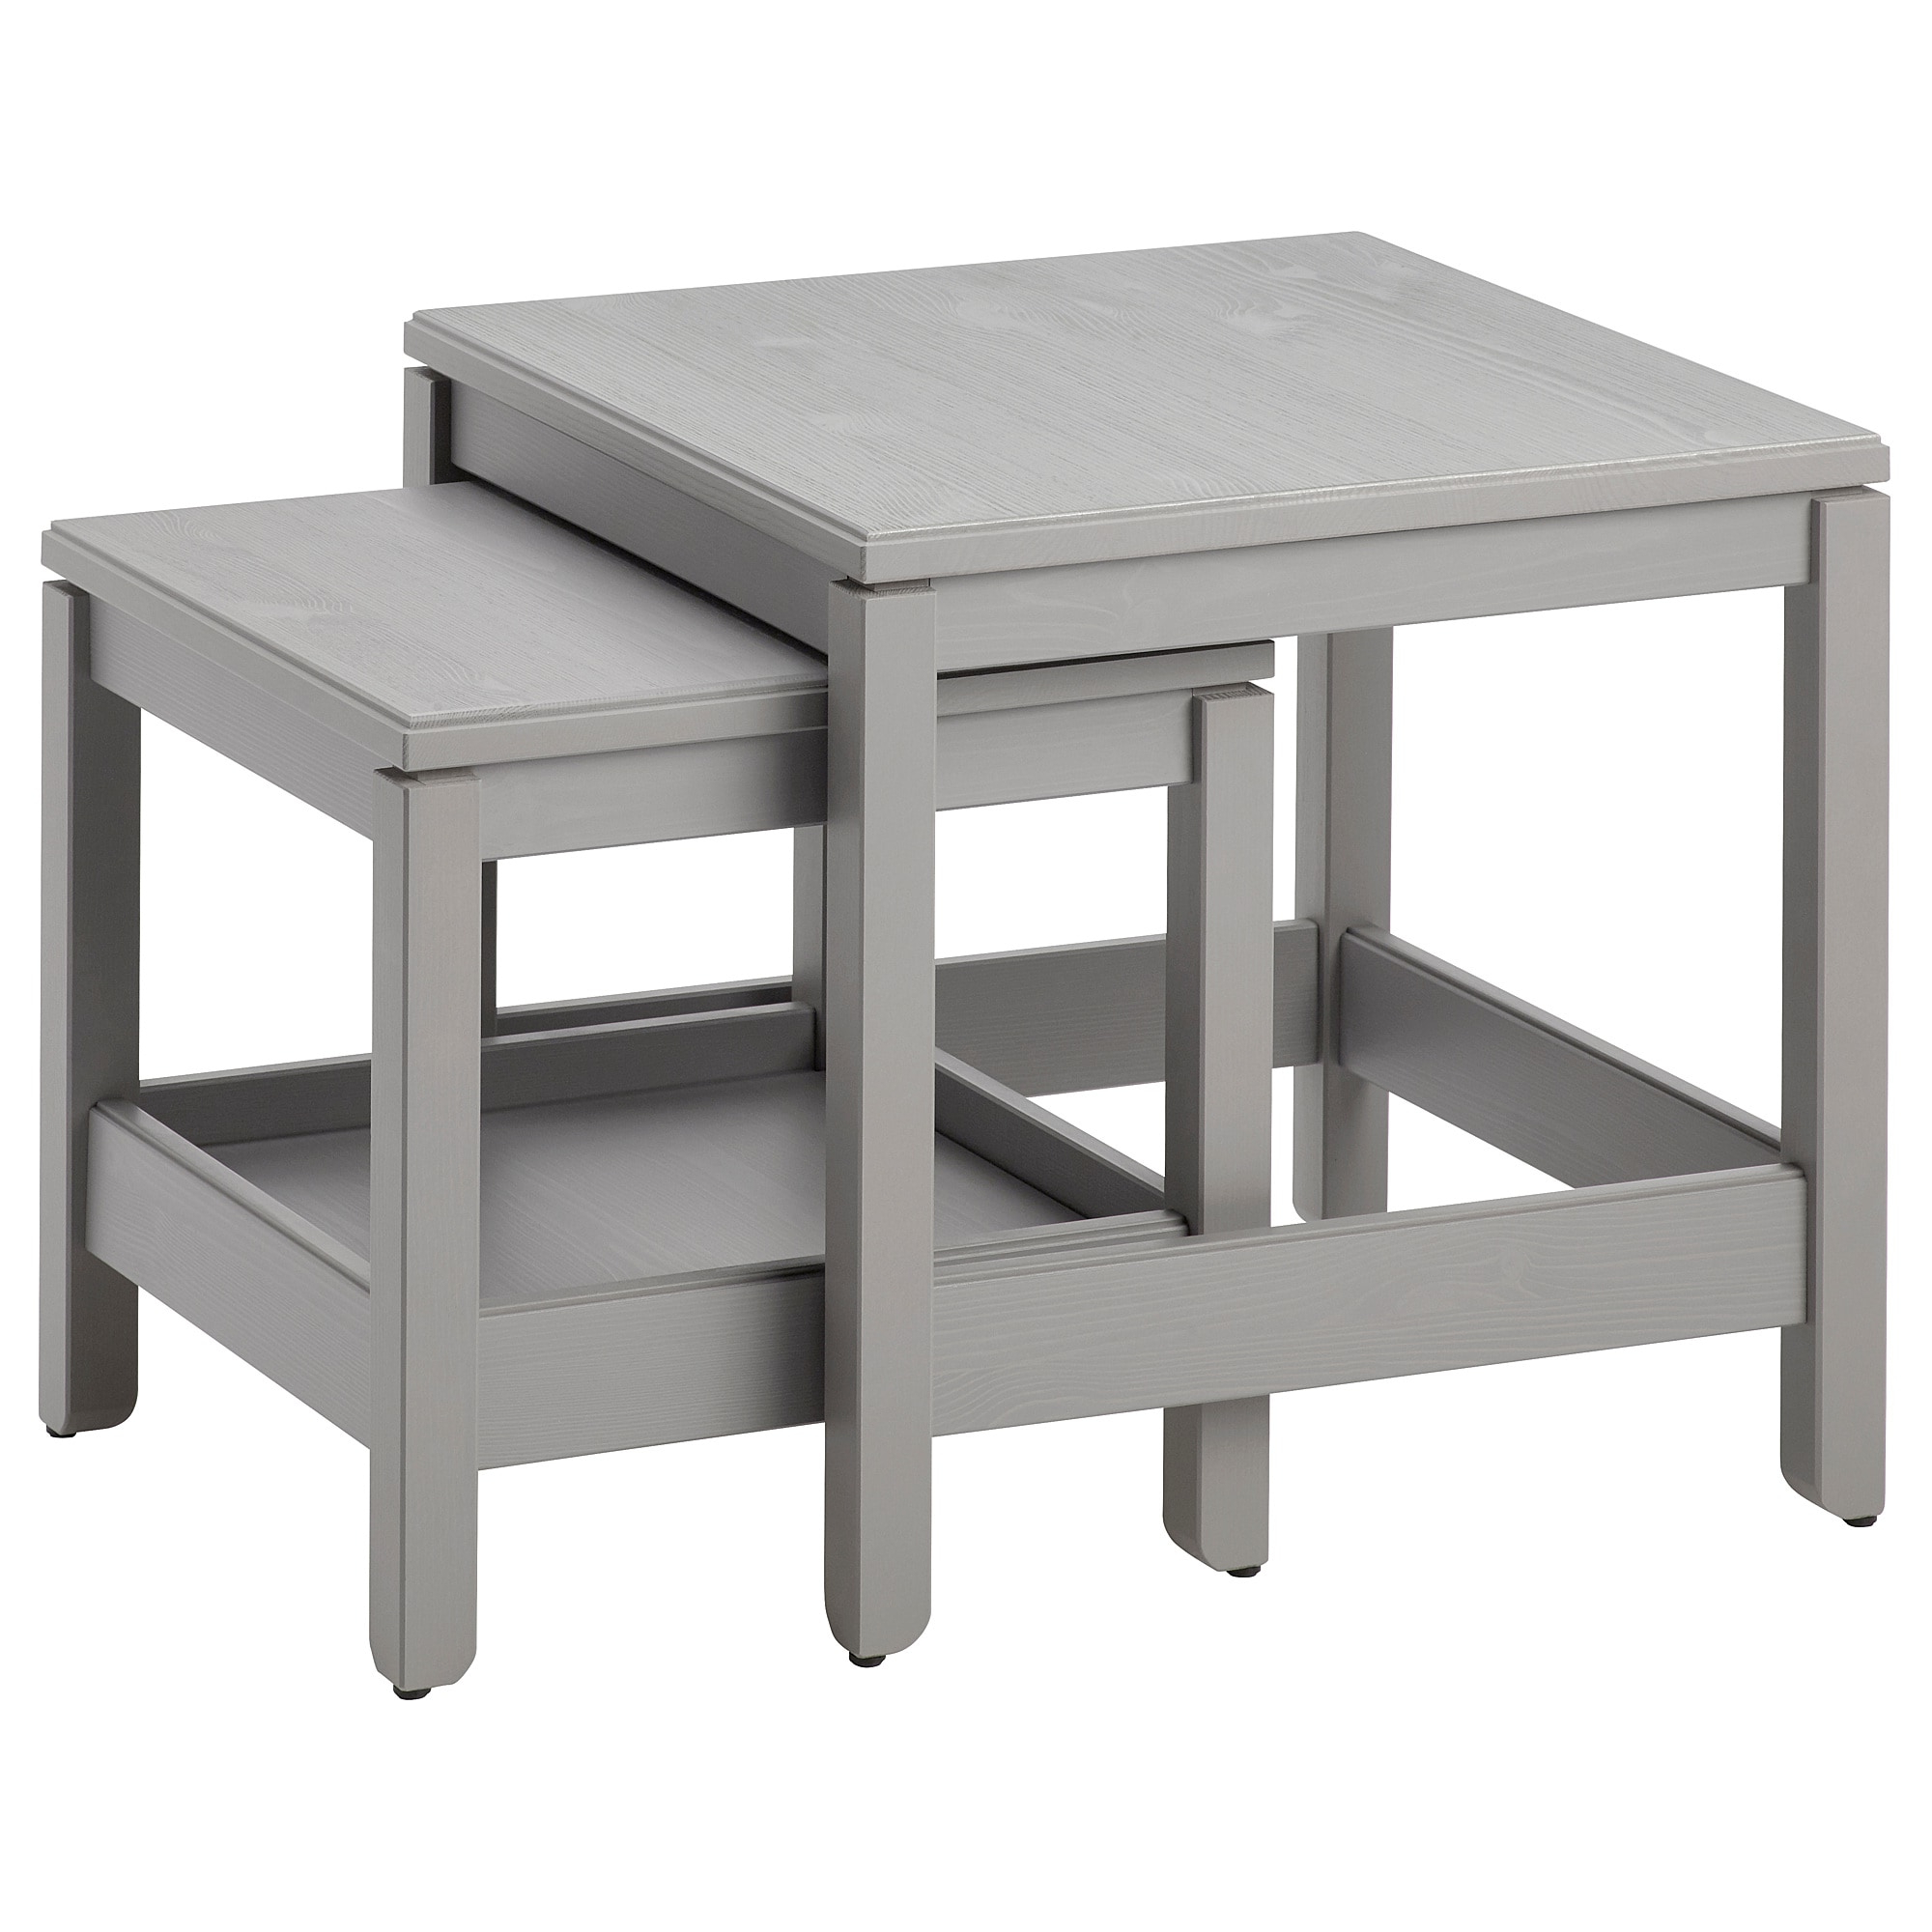 Ikea Throughout Trendy Cara Cocktail Tables (View 9 of 20)